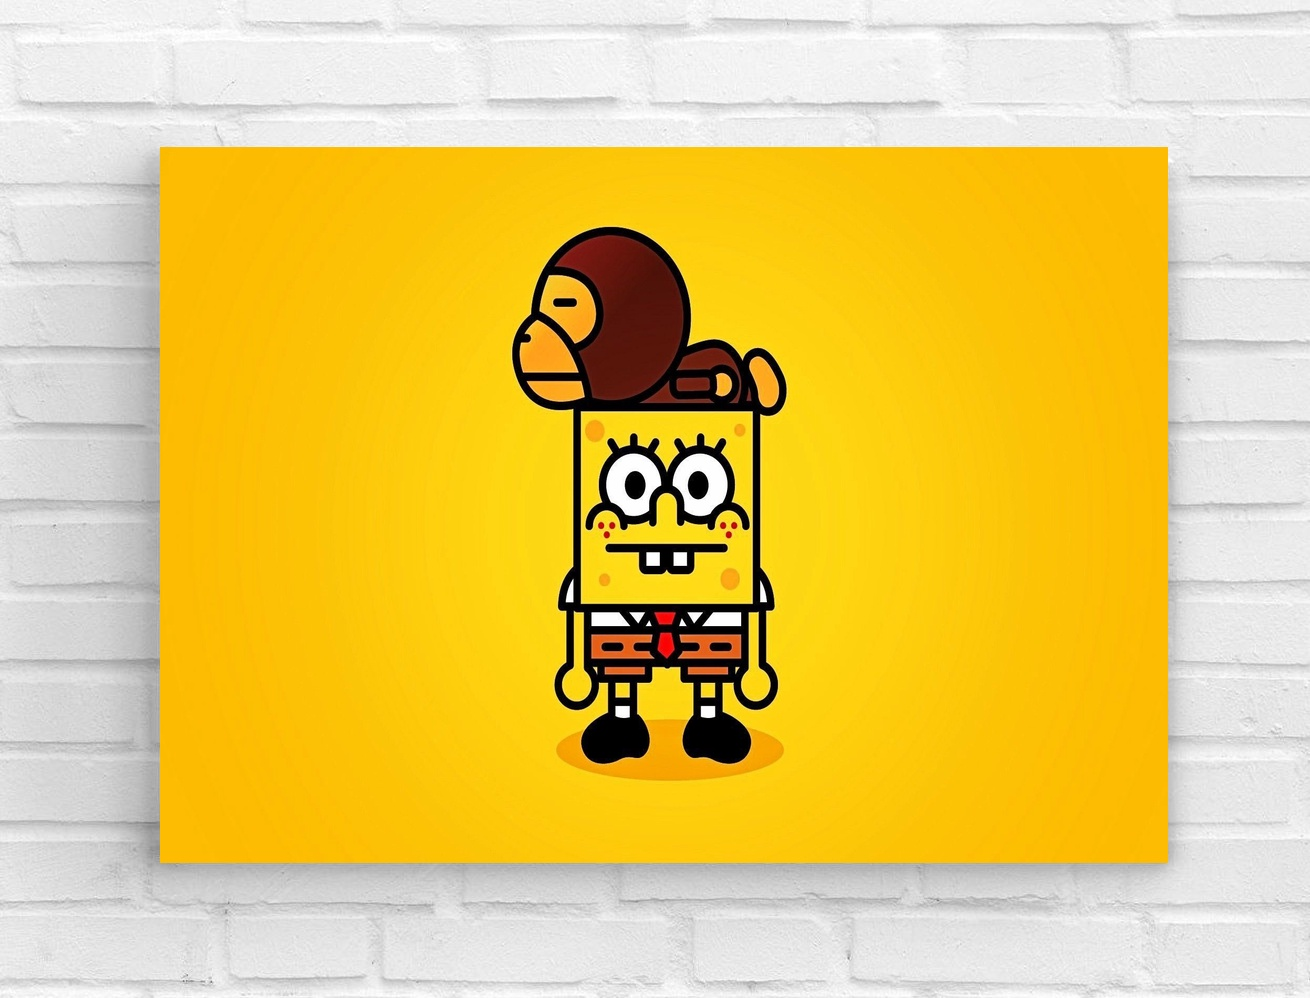 Anime SpongeBob SquarePants Canvas Wall Art Posters Home Decor-in ...